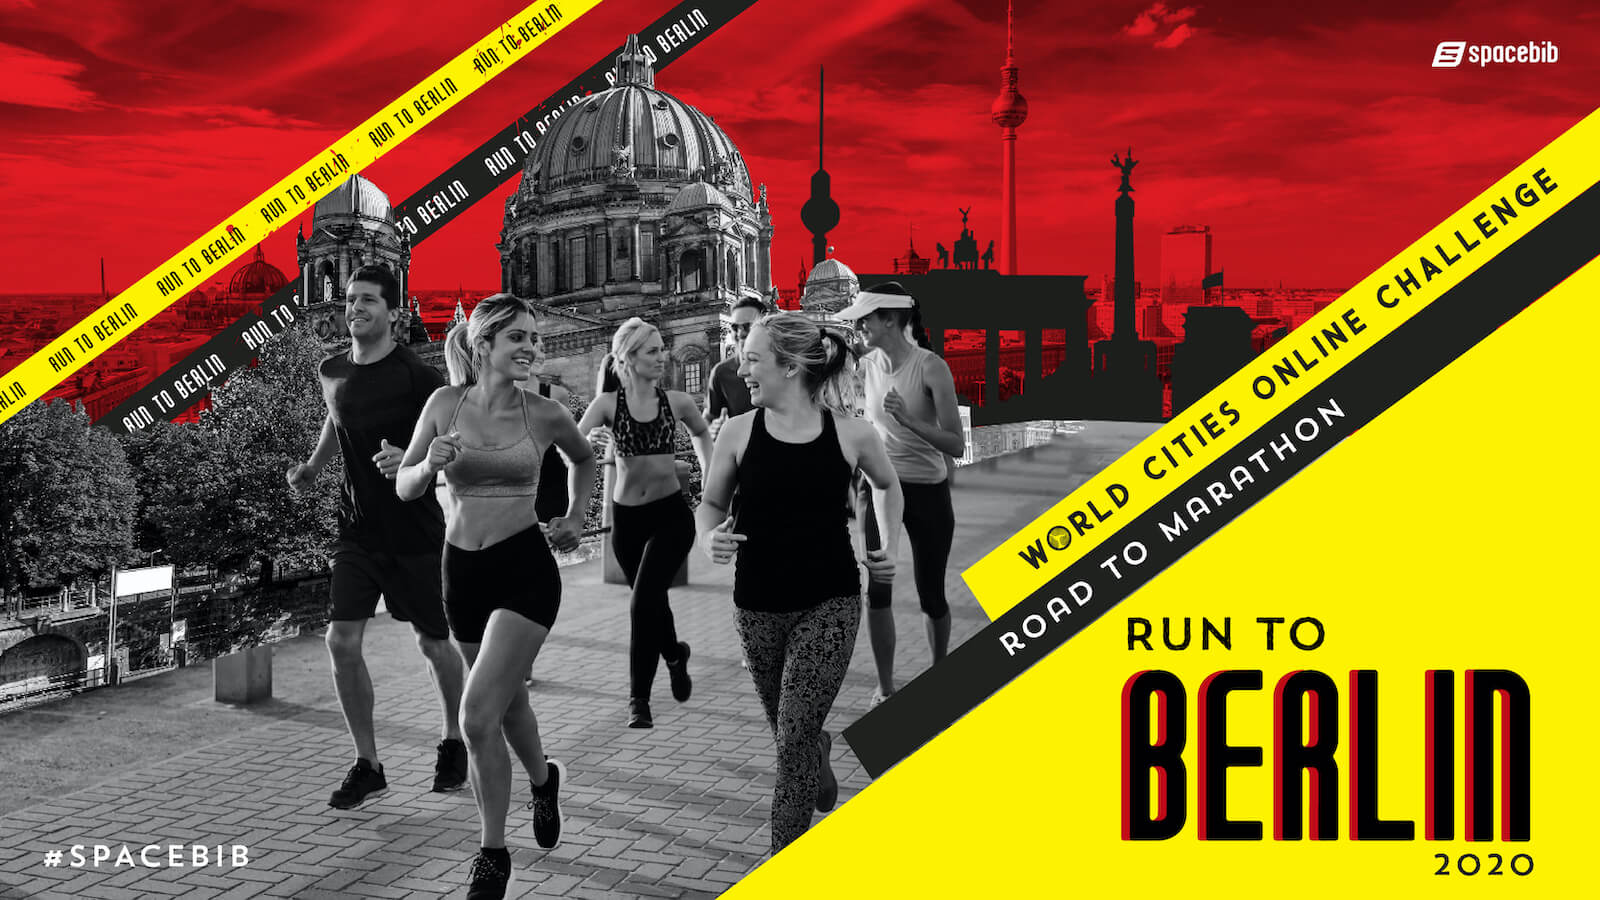 Run to Berlin 2020